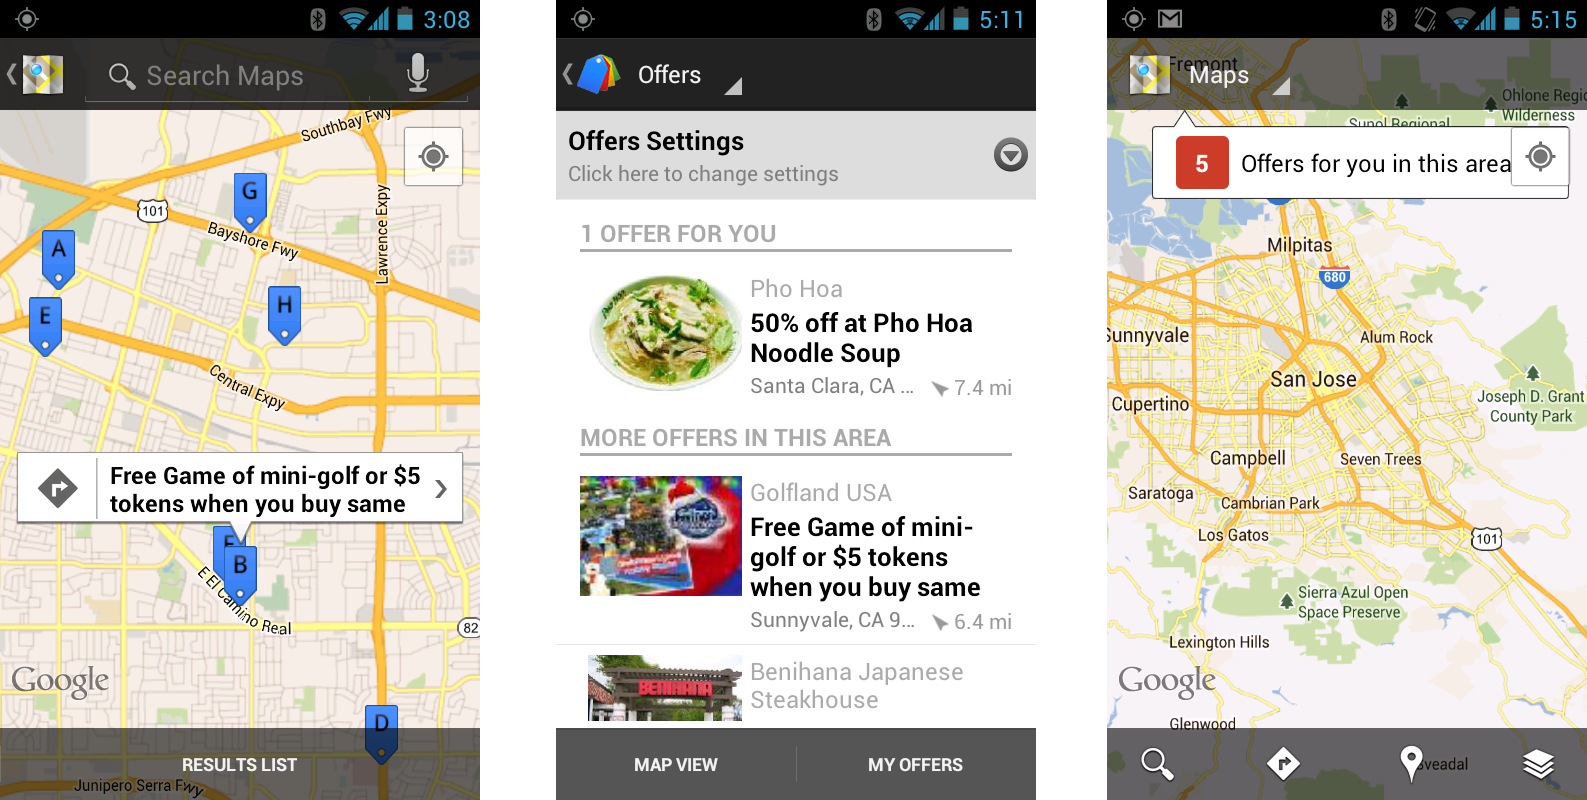 Google Commerce: Discover Google Offers near you in Google